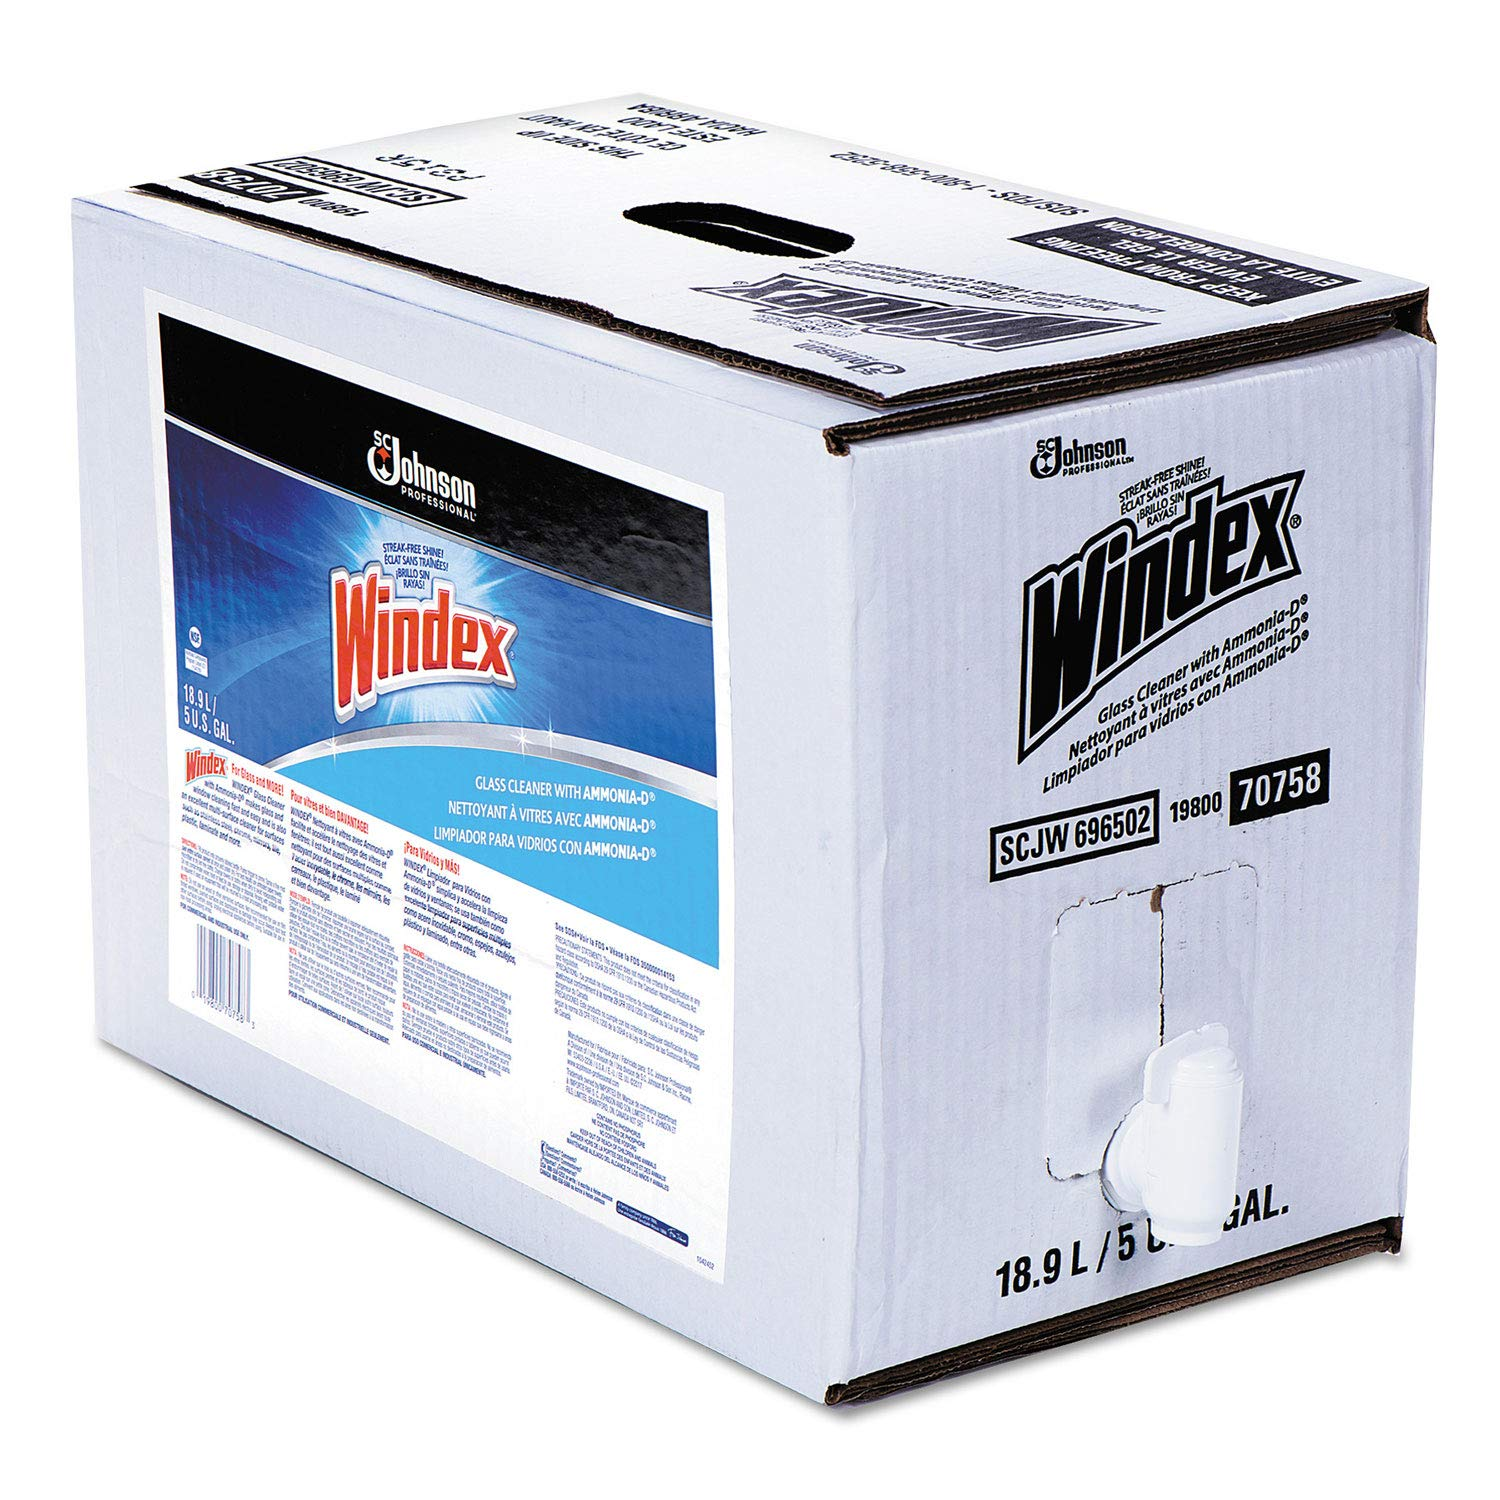 Windex® Glass Cleaner 5 Gallon